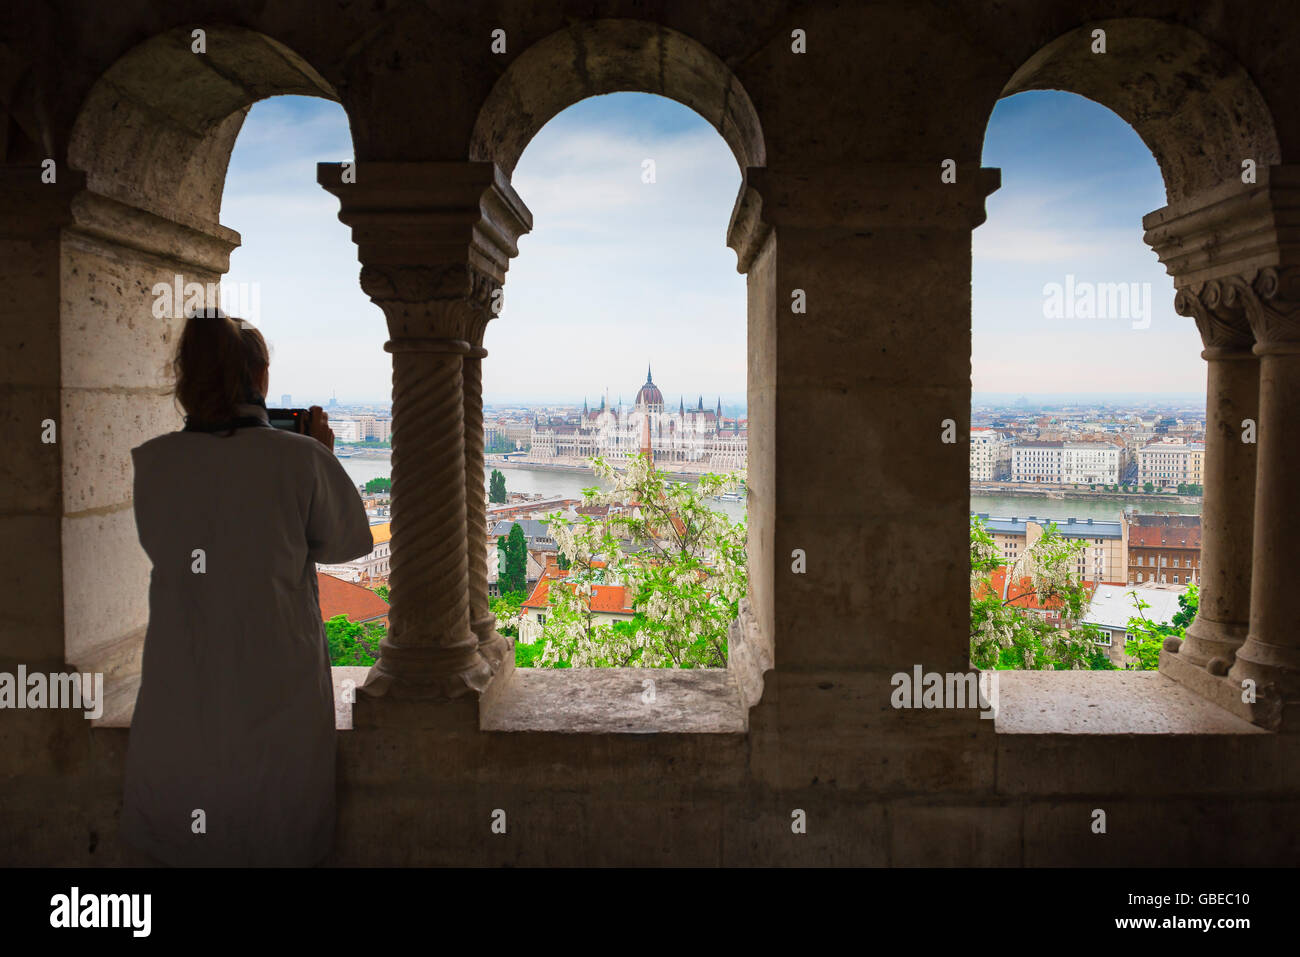 Woman taking photo, a tourist standing in a cloister in the Fishermens Bastion in Budapest photographs the Parliament - Stock Image